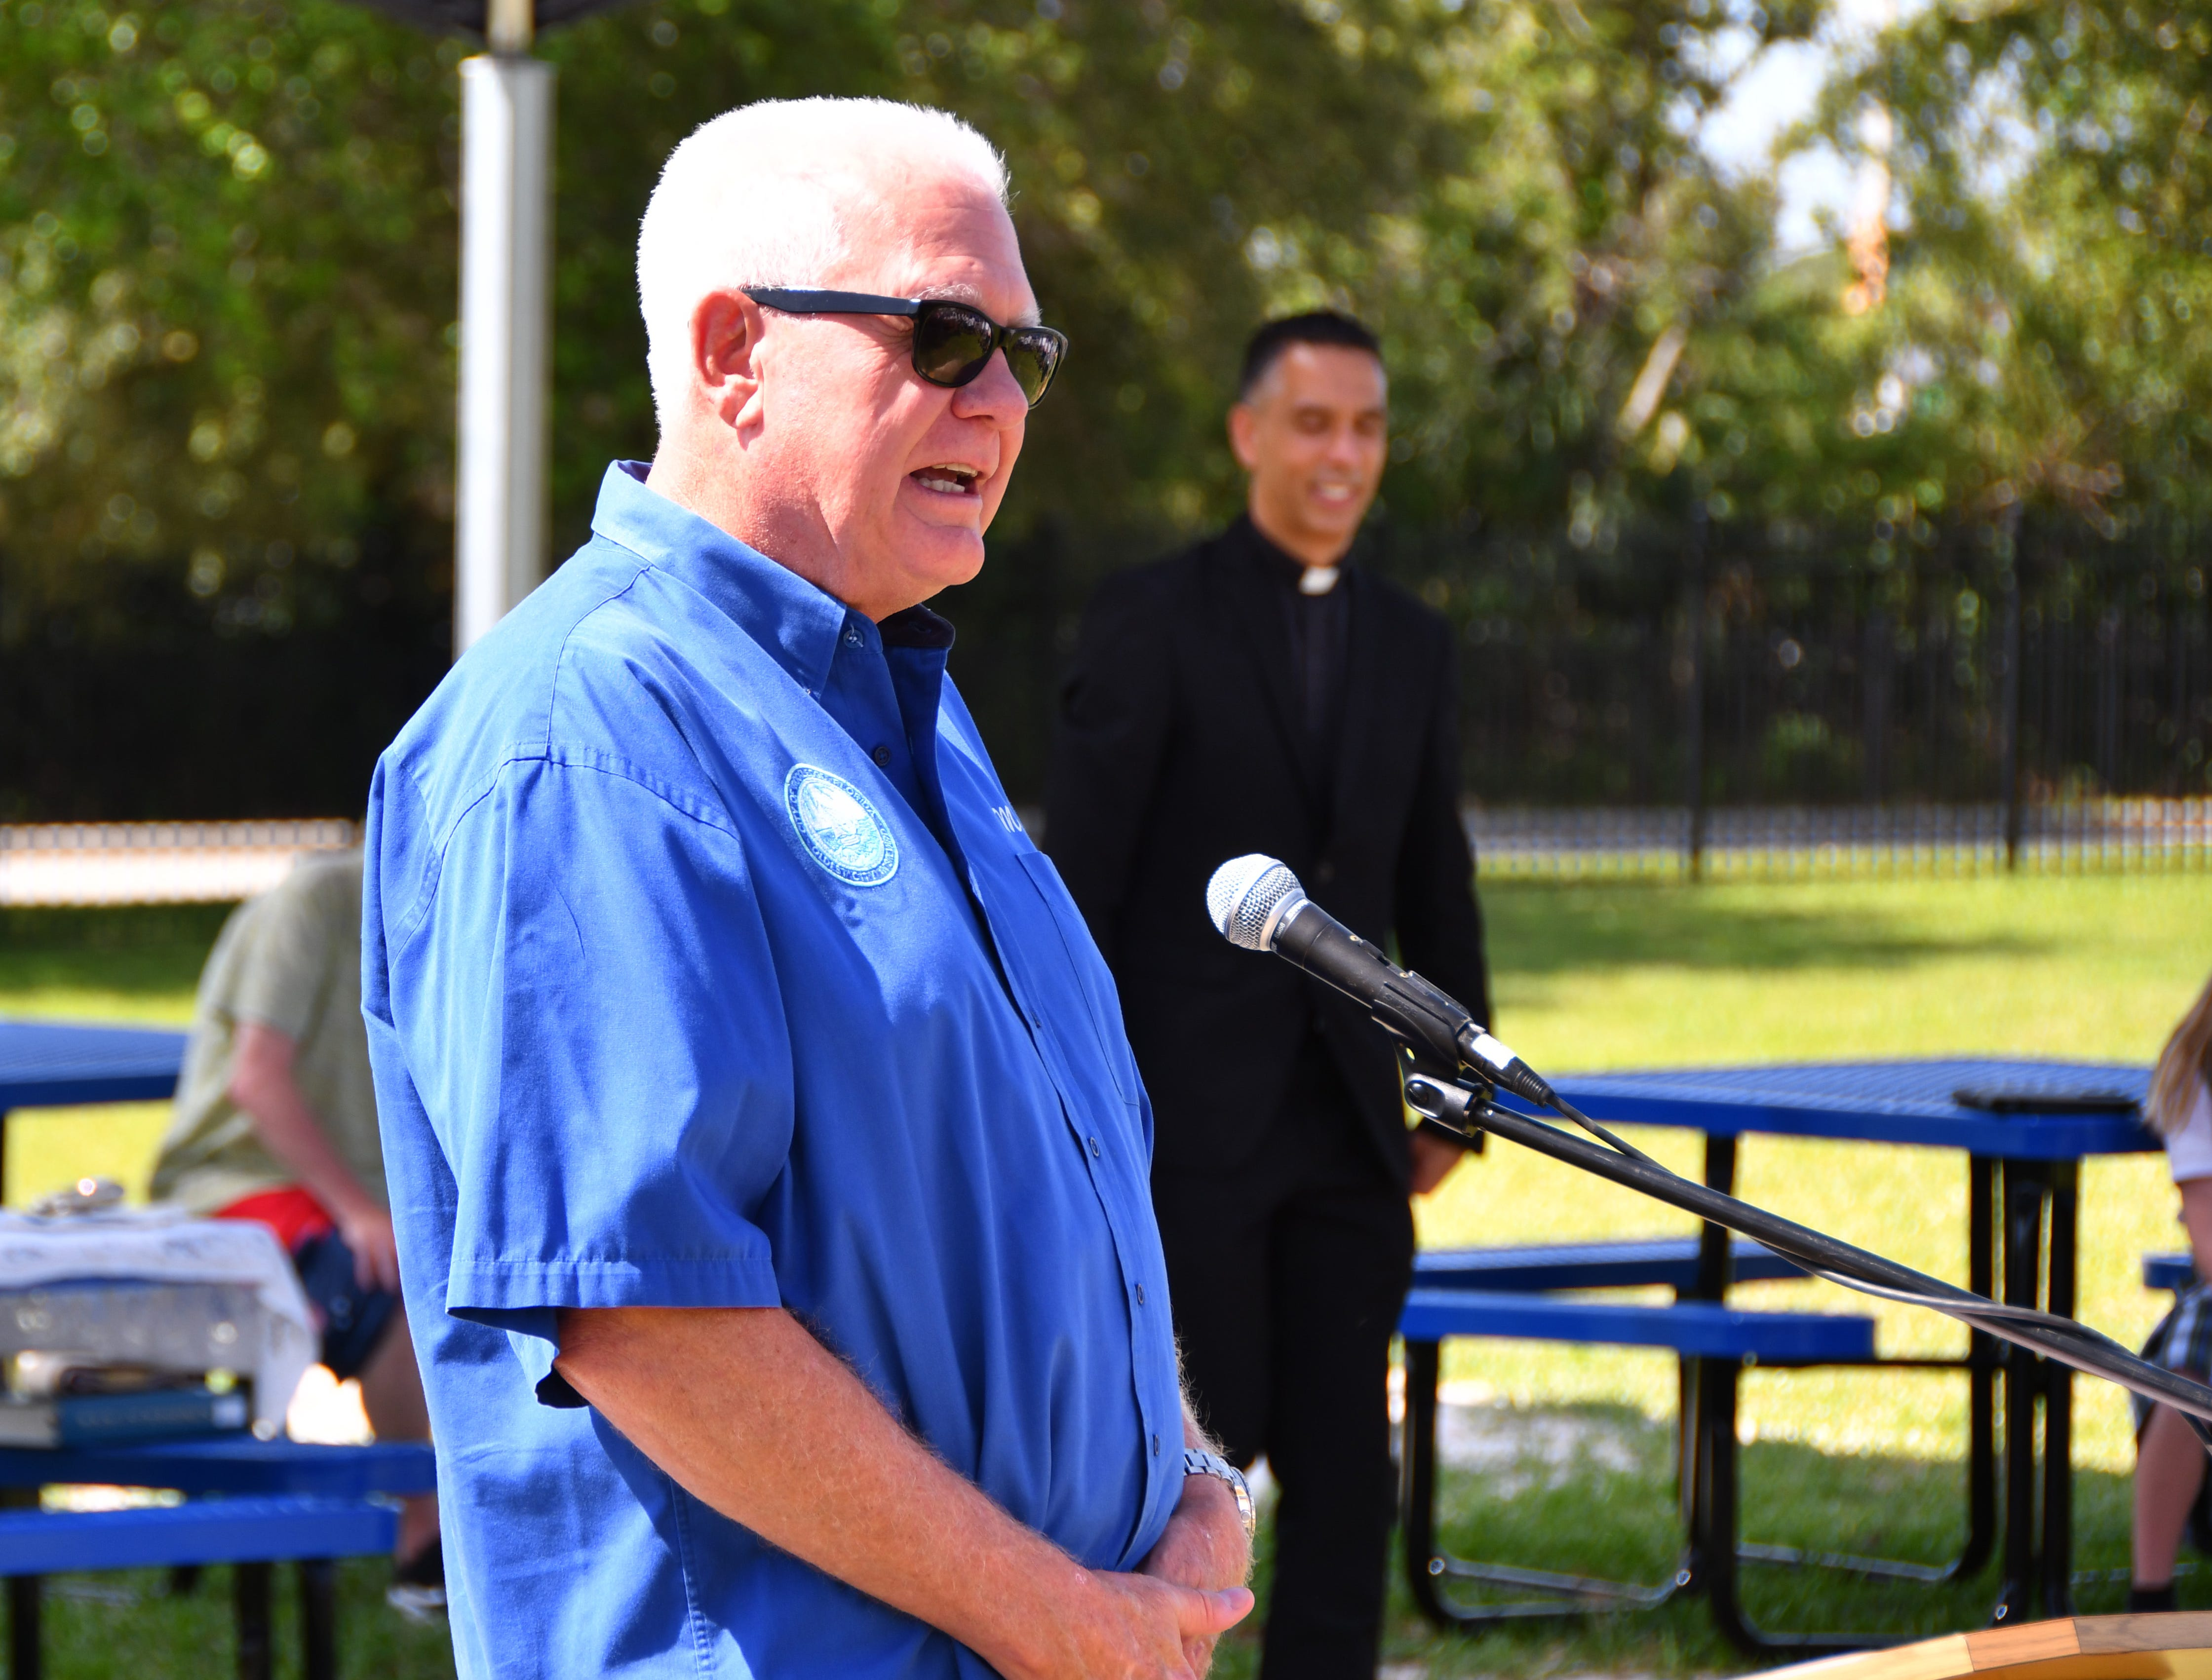 Rocklege Mayor Tom Price spoke to the group. St. Mary Catholic School in Rockledge hosted a dedication ceremony for its newly constructed shade structures Wednesday morning made possible by a grant from the American Academy of Dermatology's Adopt-A-Shade program. Board-certified dermatologist, Francille MacFarland, MD, FAAD, provided a generous donation to the AAD, which completed the funding necessary to build the structure over the school's primary playground and picnic area. The shade will help protect more than 250 children and teachers daily from the sun's harmful ultraviolet rays. Other parishioners, families, doctors and school fund raisers helped cover the cost.